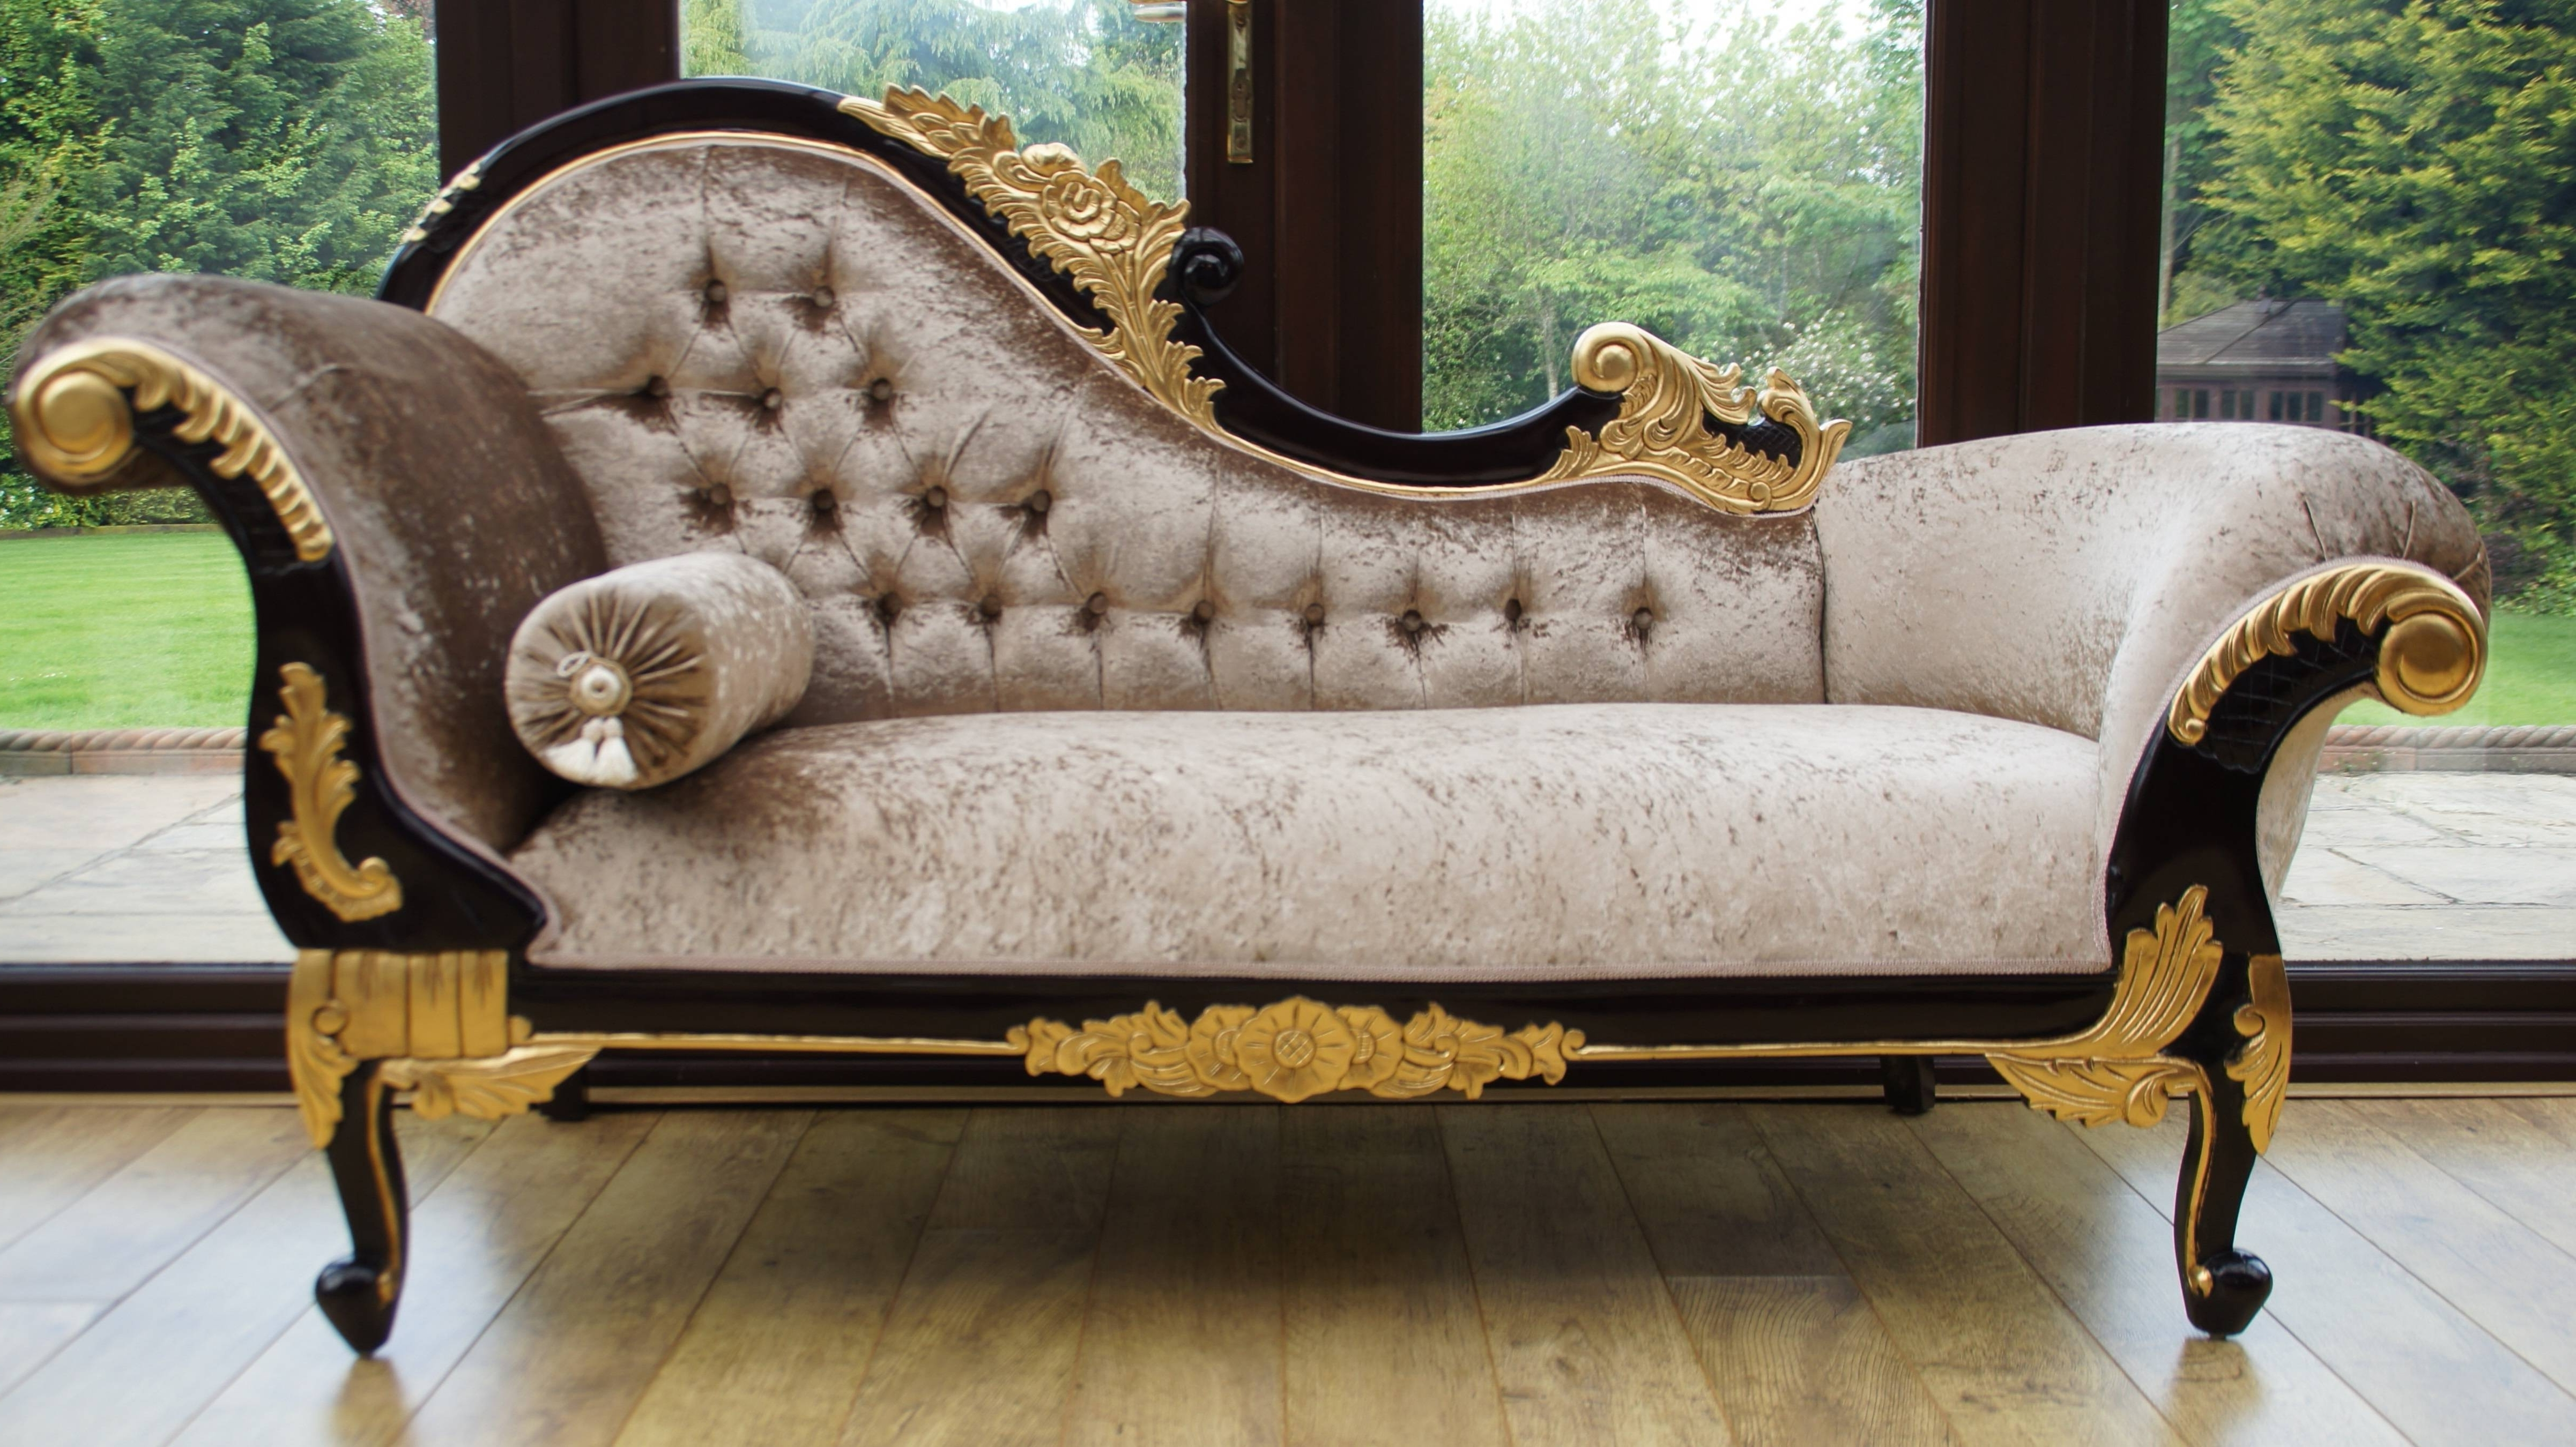 2017 Chaise Chair Beautiful Antique Furniture Black And Gold Velvet Of Throughout Gold Chaise Lounges (View 1 of 15)